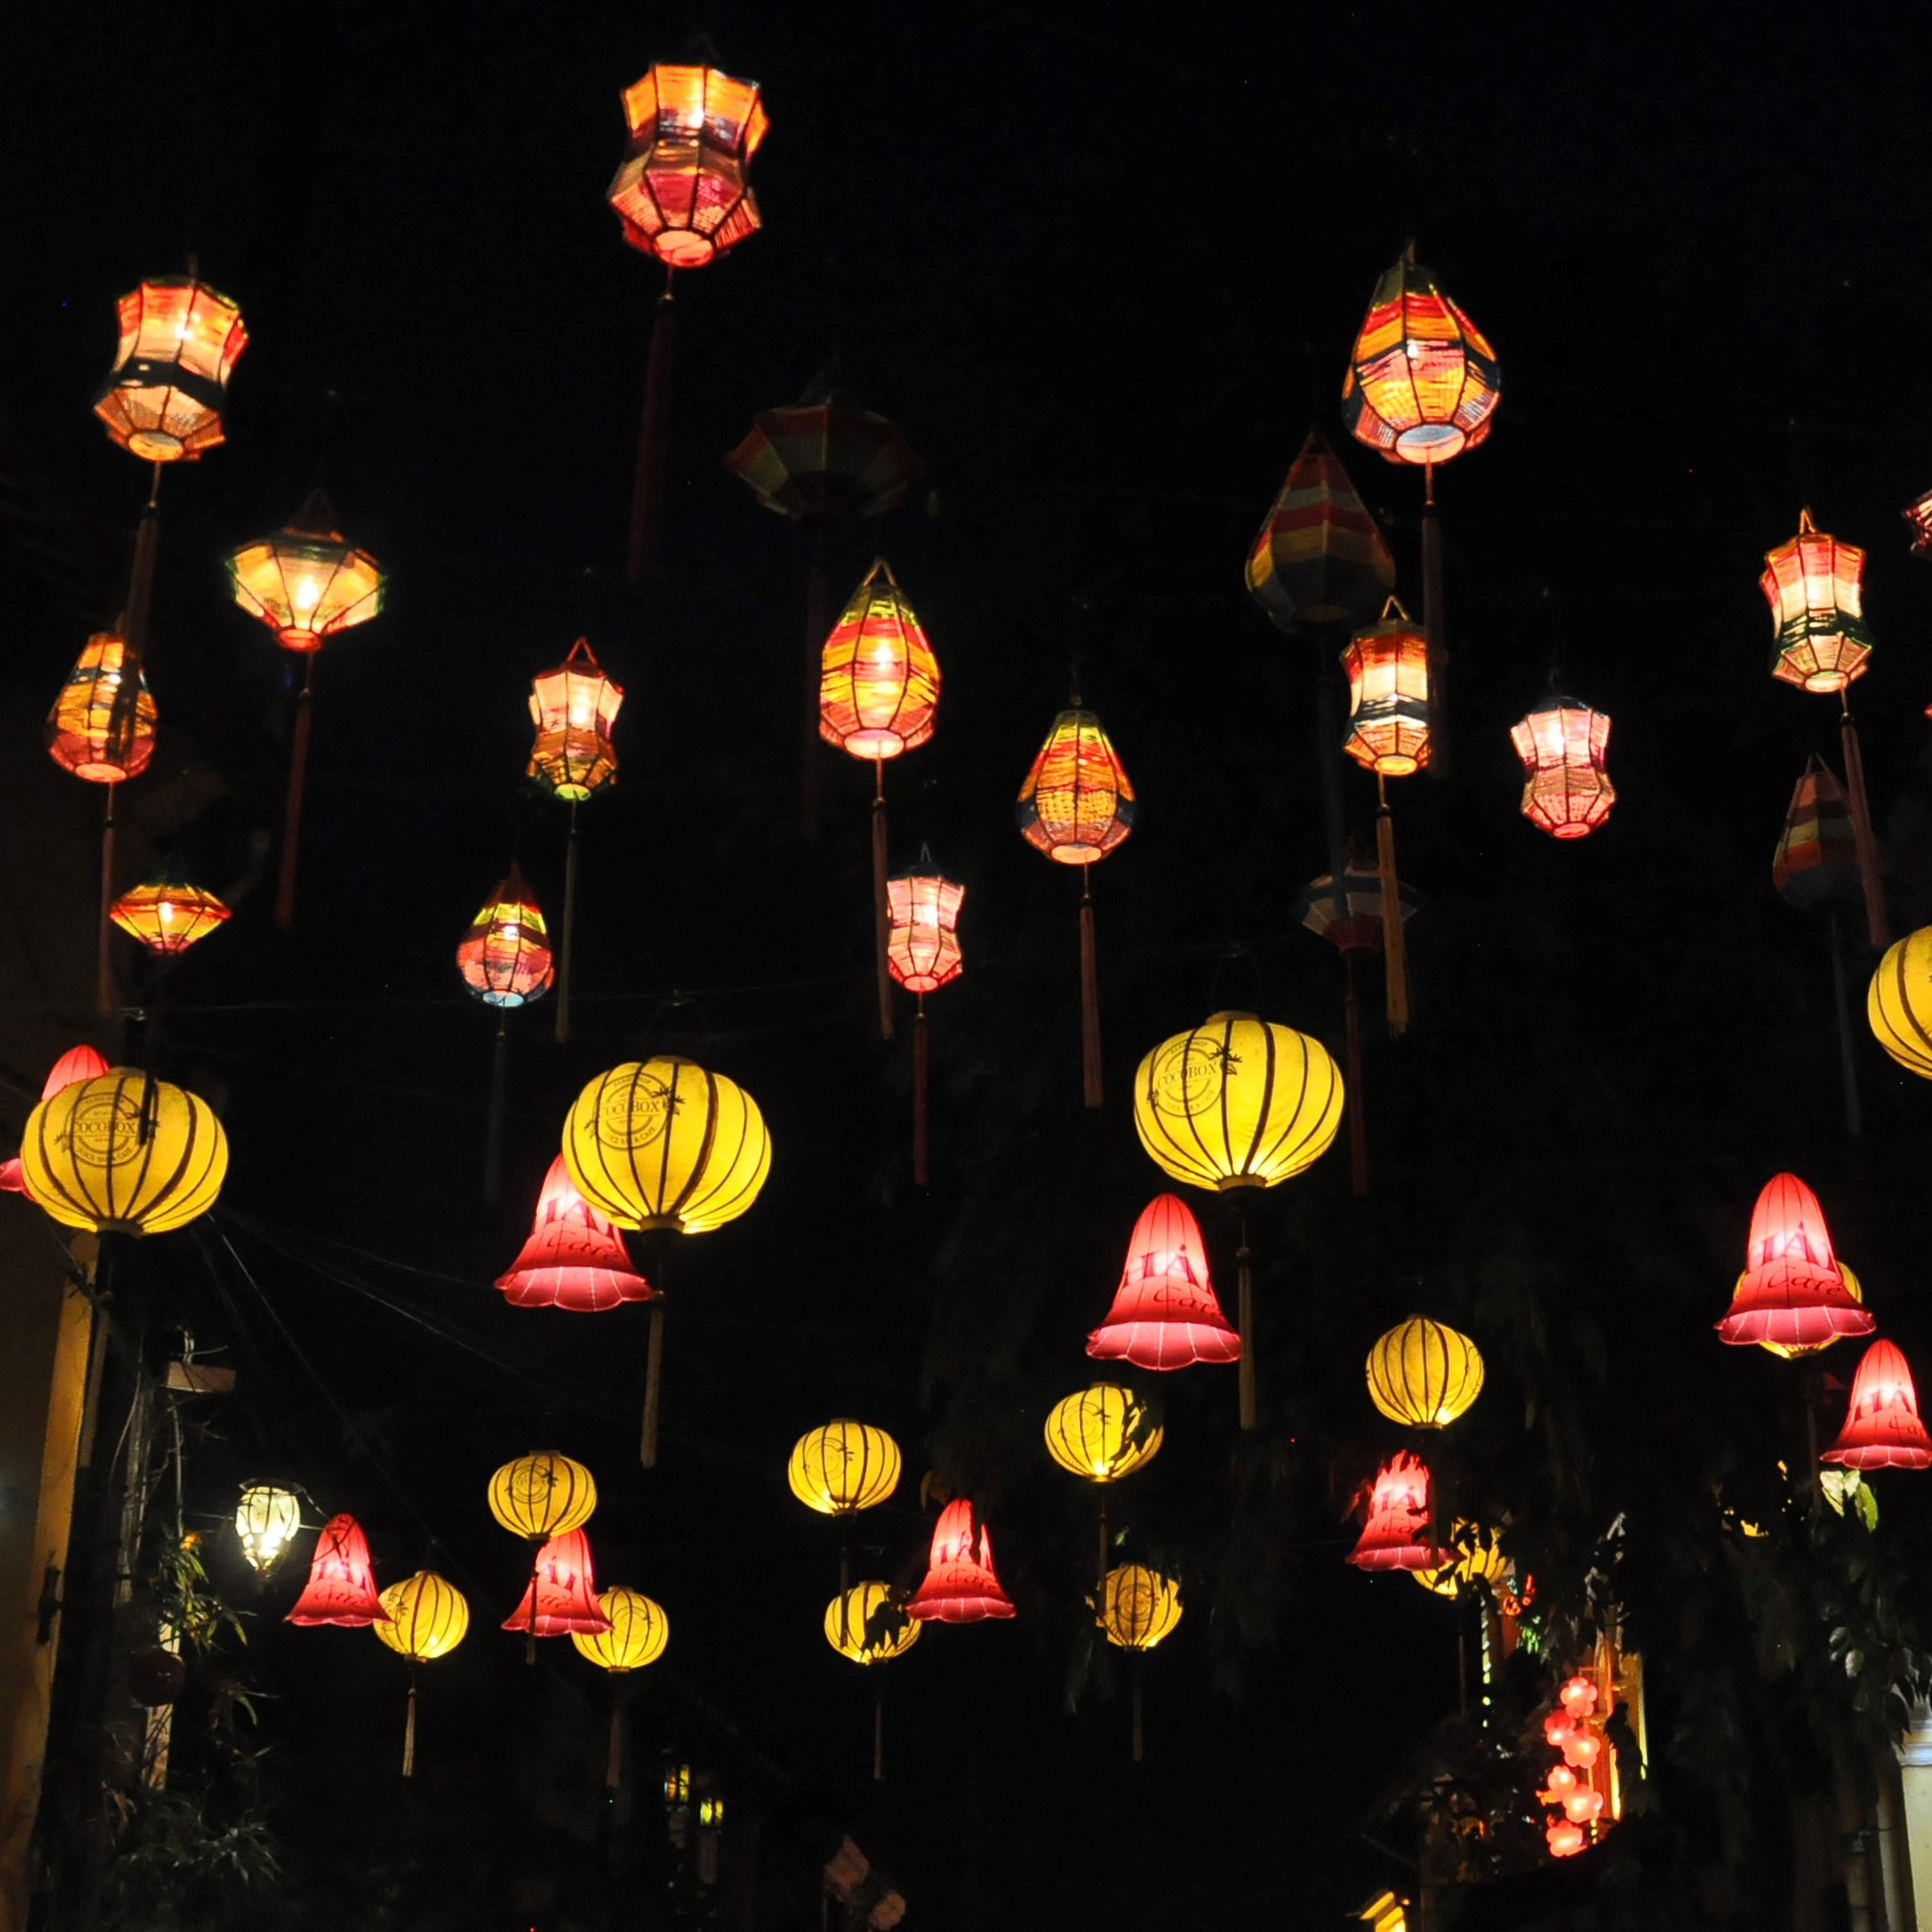 Multi-coloured lanterns hanging in a street in the Old Town in Hoi An and lit up at night.